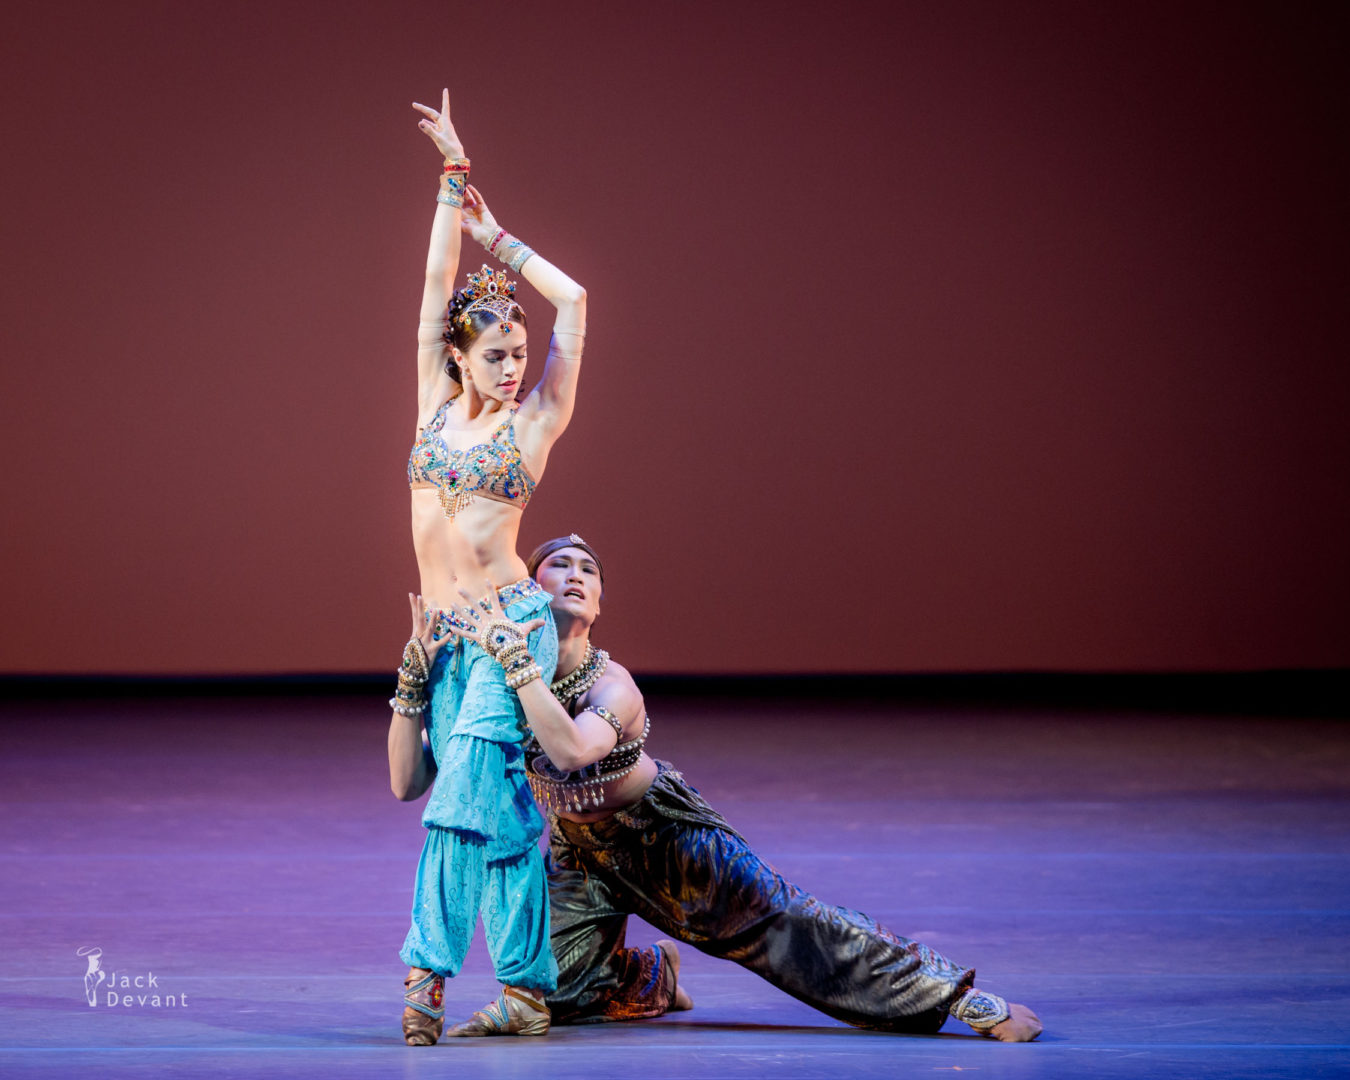 Nadezhda Batoeva (Rus. Надежда Батоева) and Kimin Kim in Scheherazade, music by Nikolai Rimsky-Korsakov, choreography by Mikhail Fokin